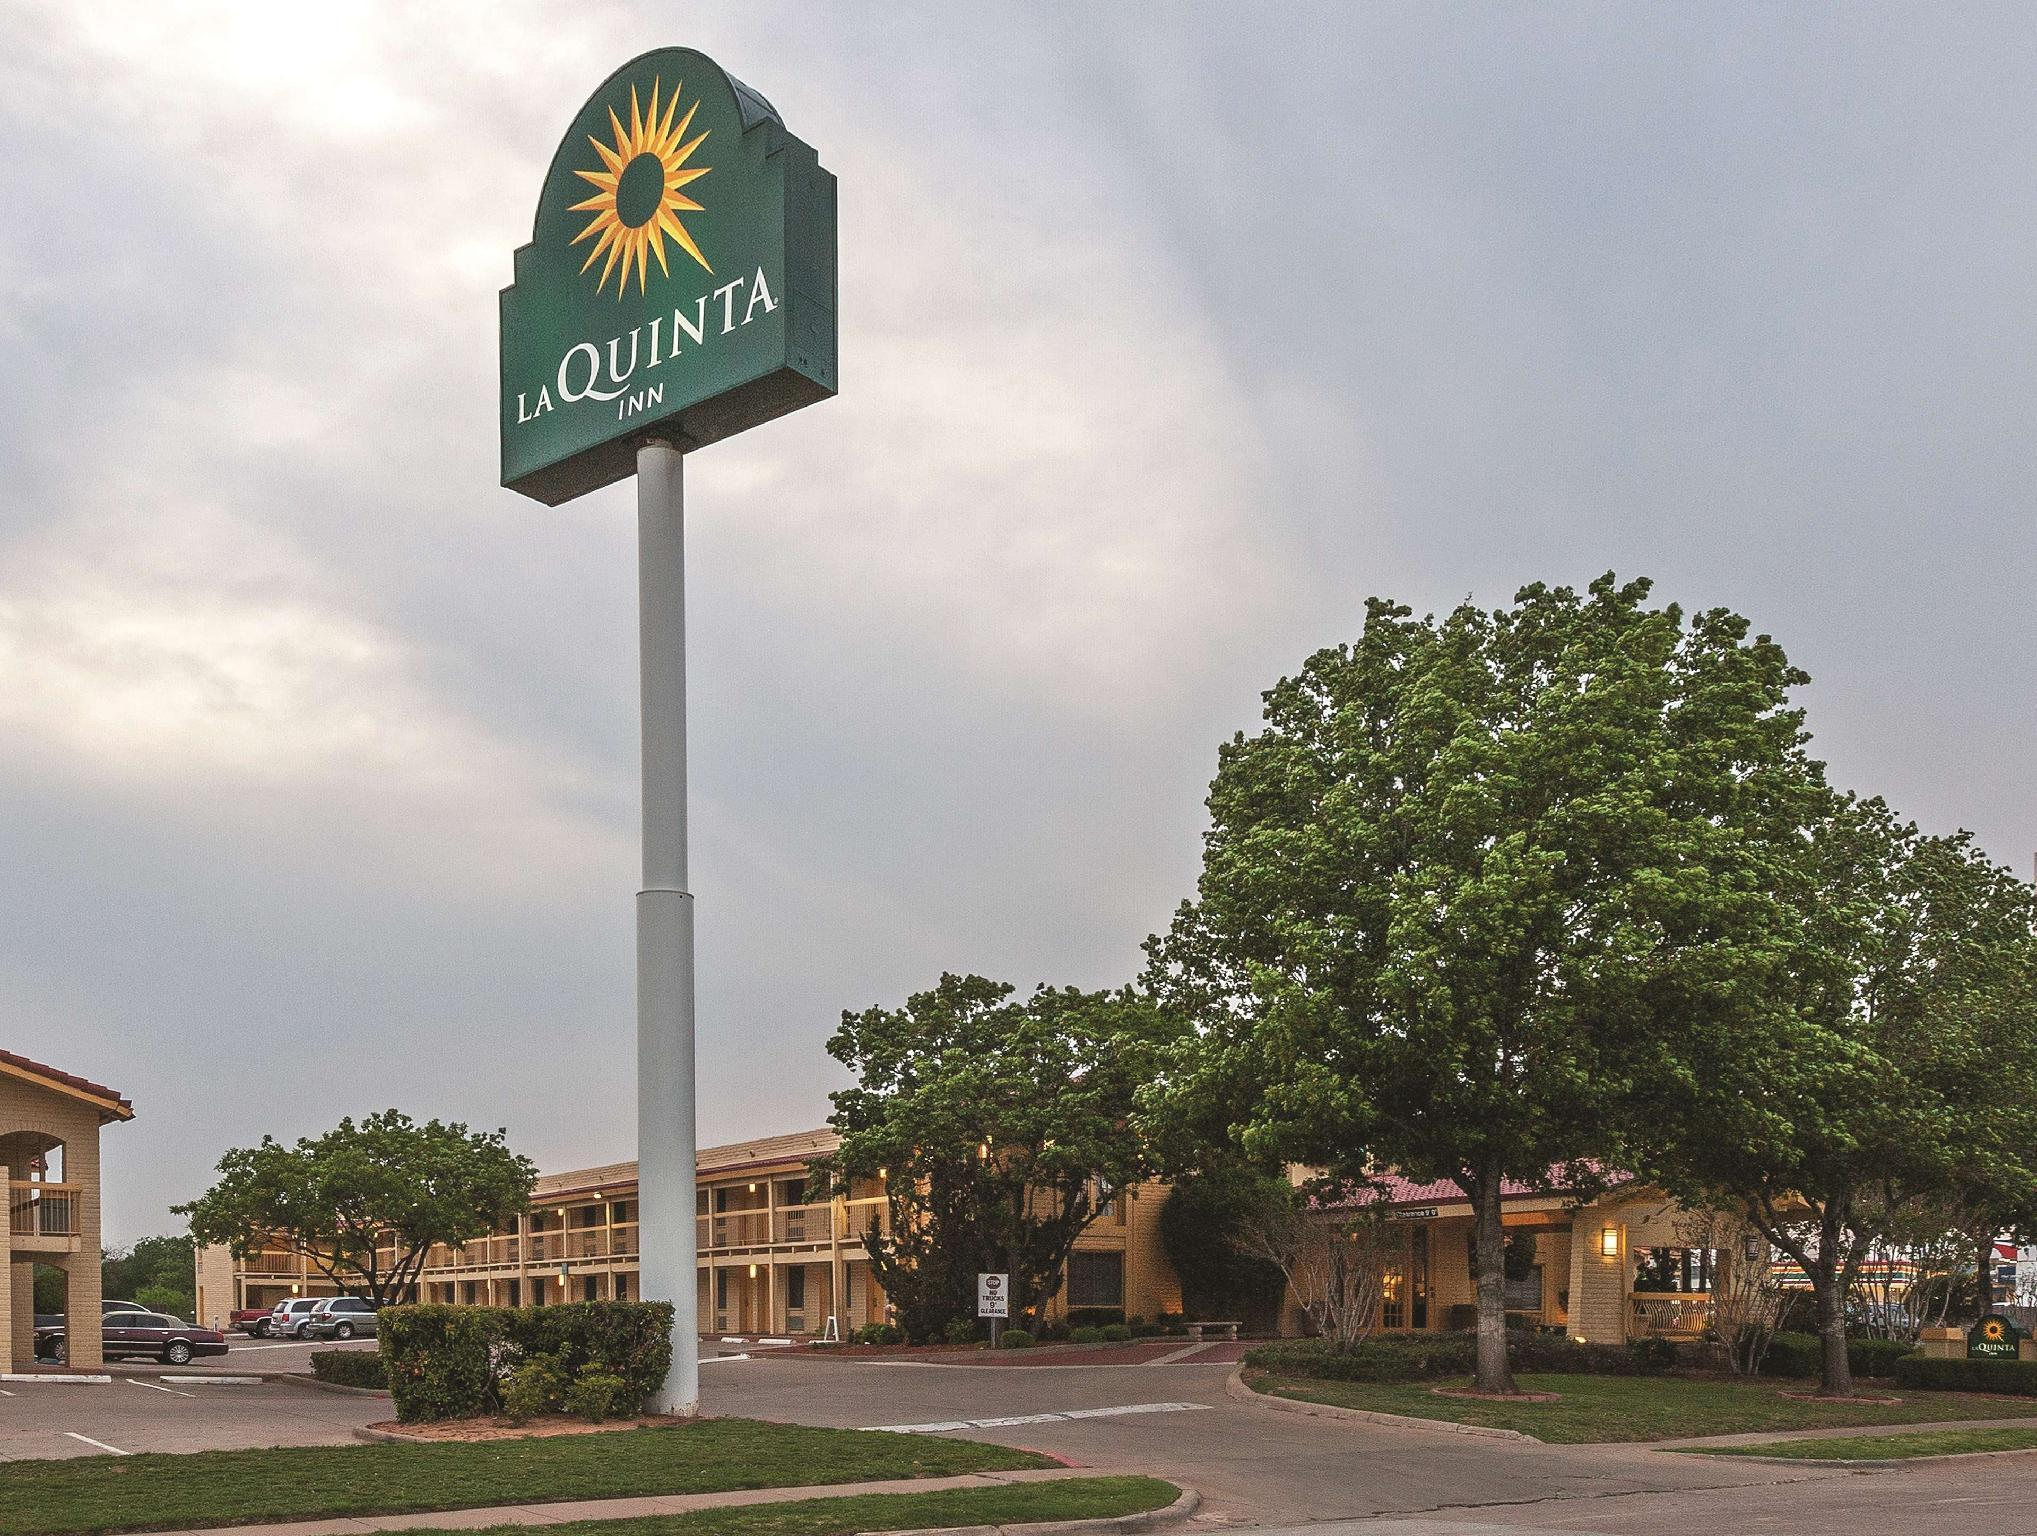 La Quinta Inn by Wyndham Wichita Falls Event Center North, Wichita